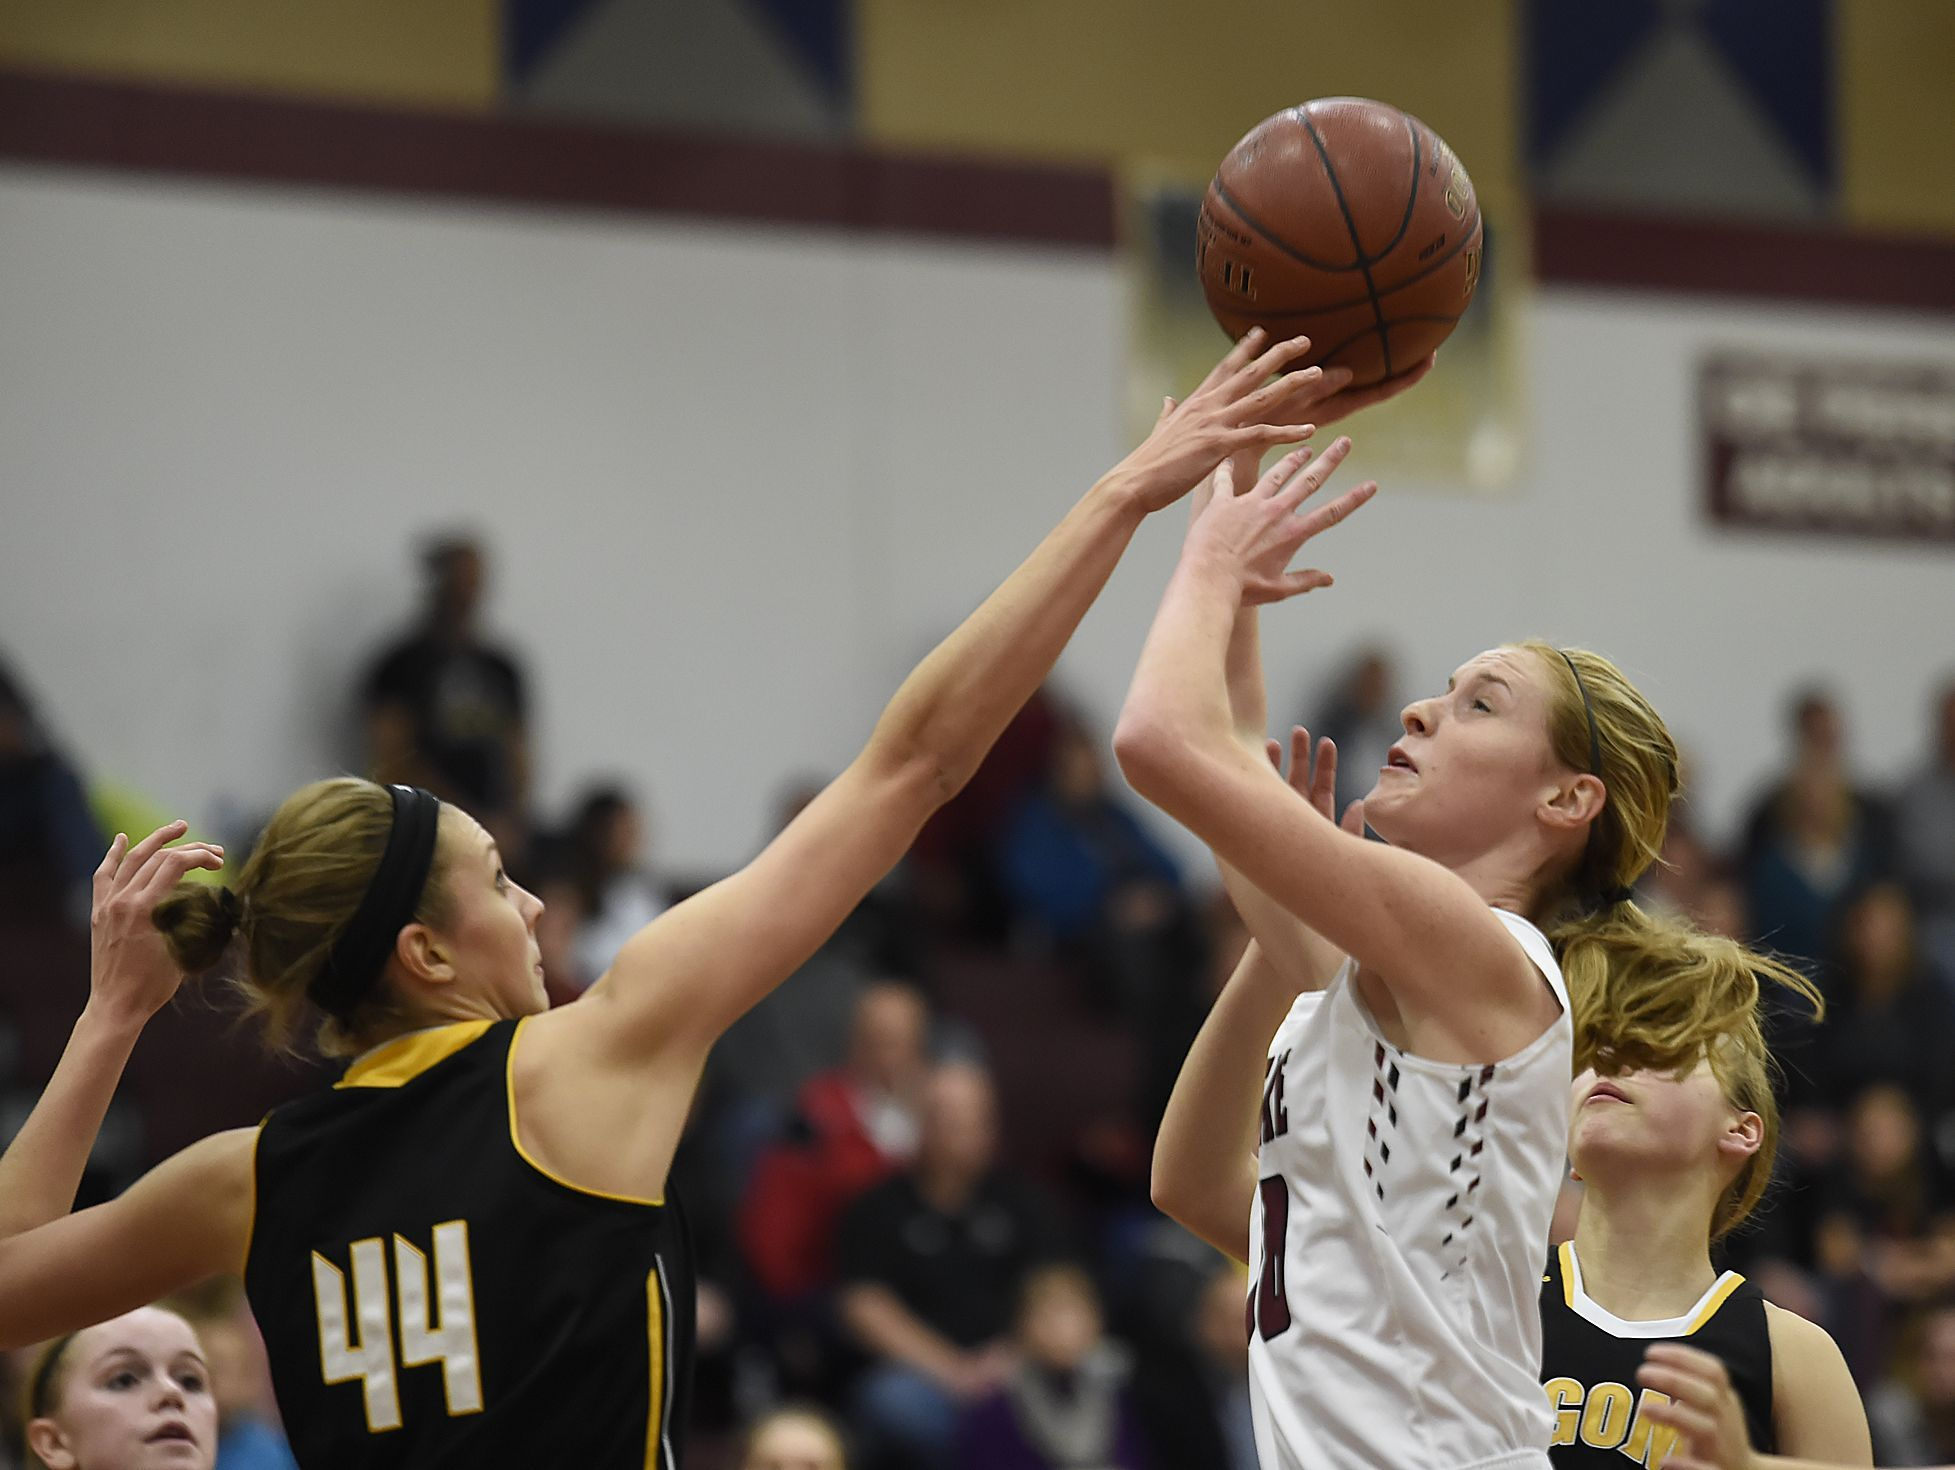 De Pere's Lauren DeMille (10) averaged 6.6 points per game as a junior last season. The 5-foot-8 senior has missed a majority of this season with a torn anterior cruciate ligament in her knee sustained in the second game of the season.